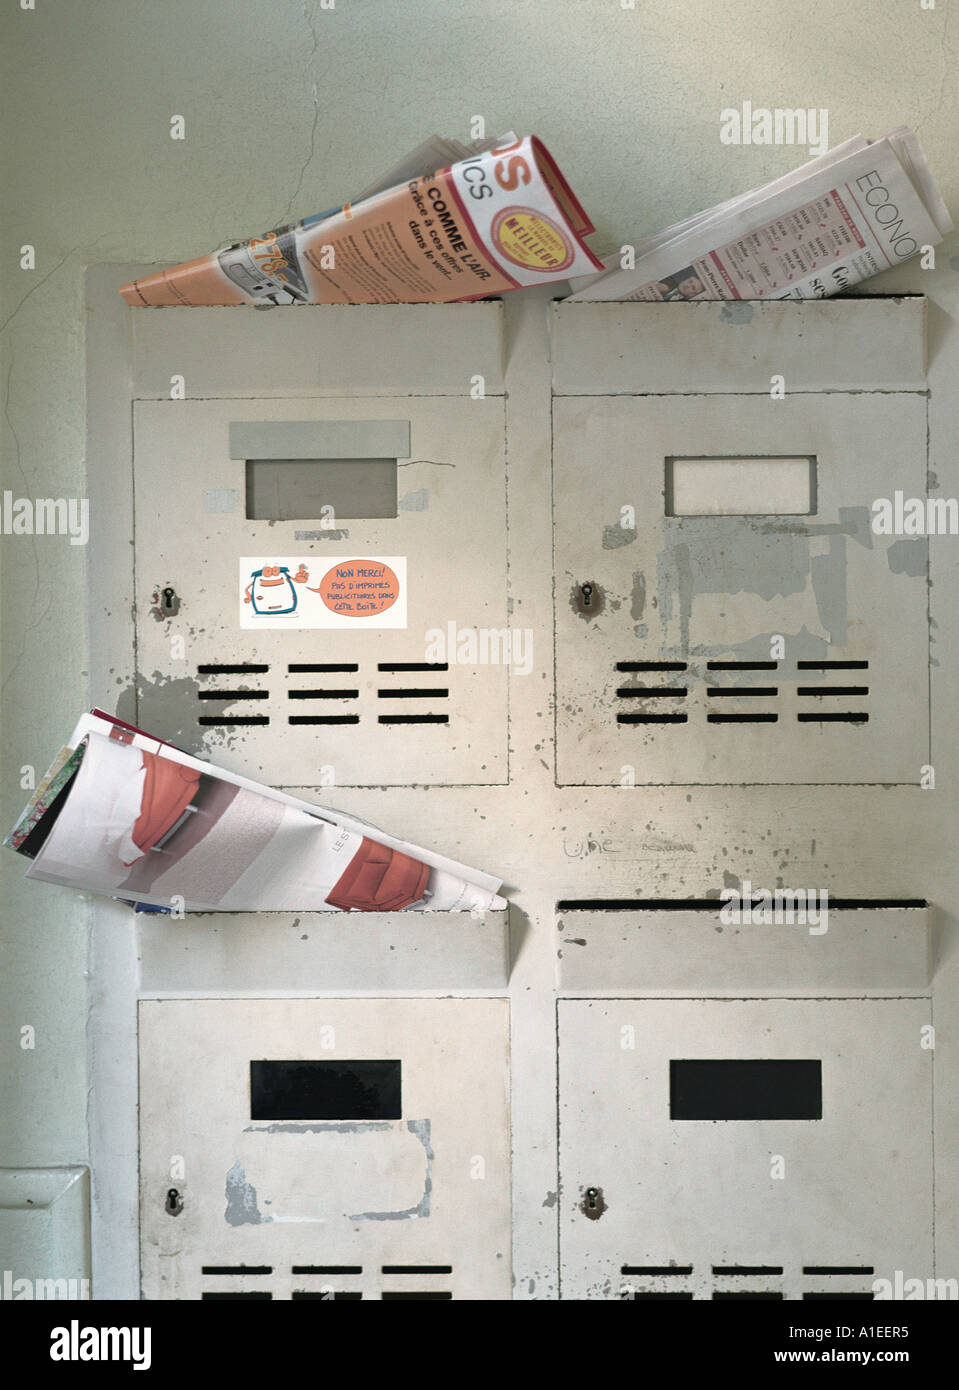 Apartment Building Mailboxes Stock Photos & Apartment Building ...